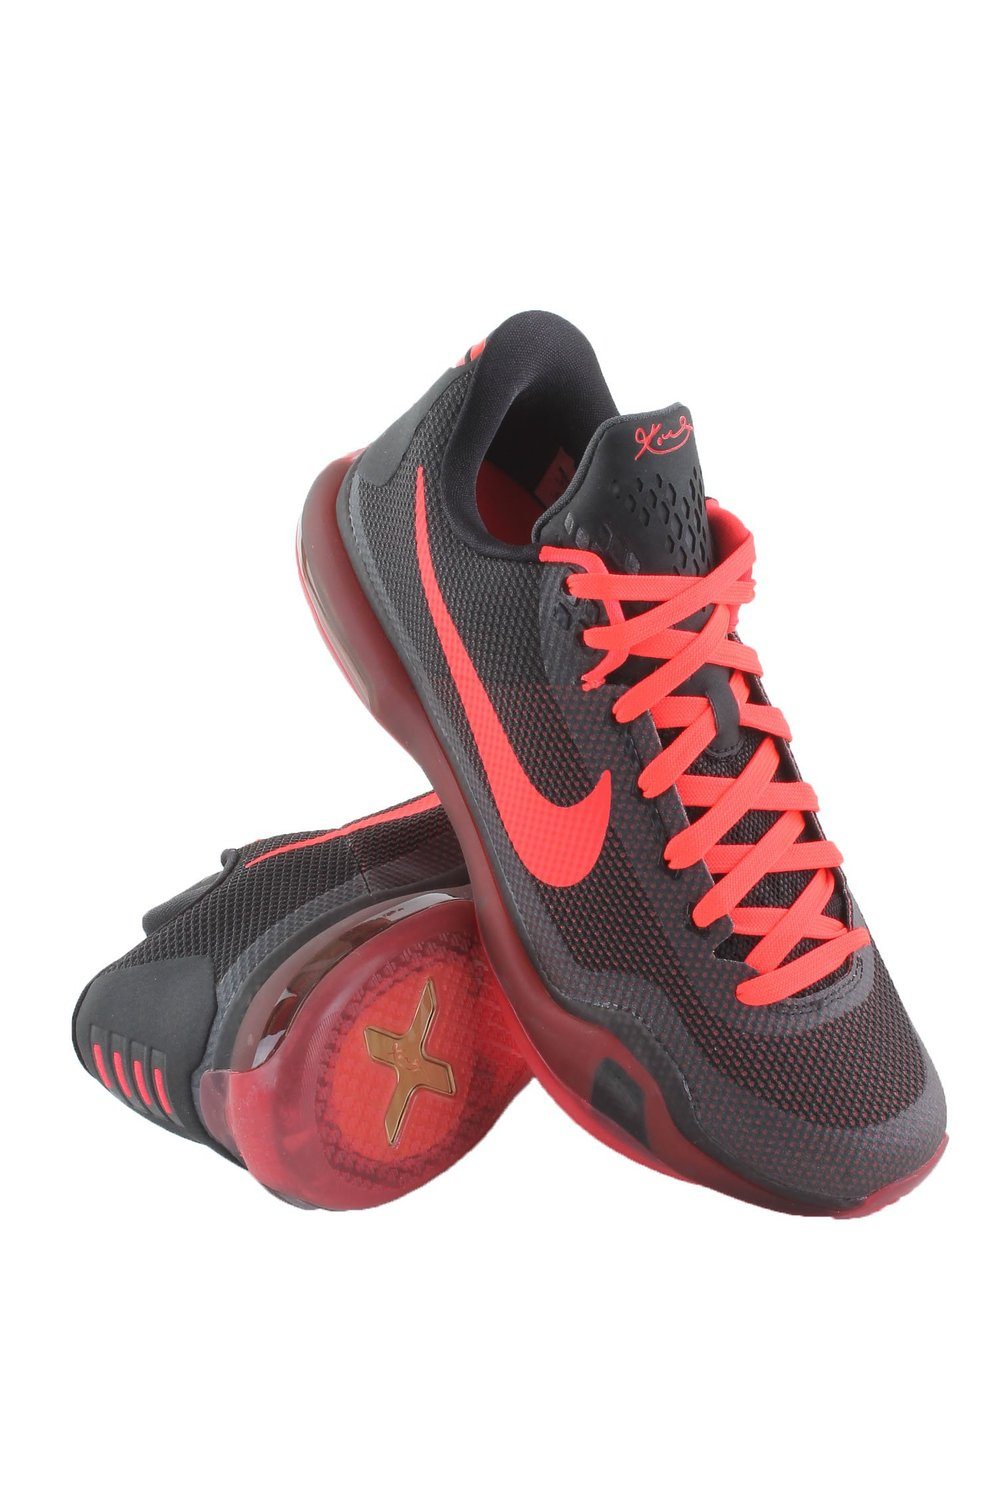 save off 81479 58d13 Get Quotations · Nike Kobe X Mens Basketball Sneakers (14)